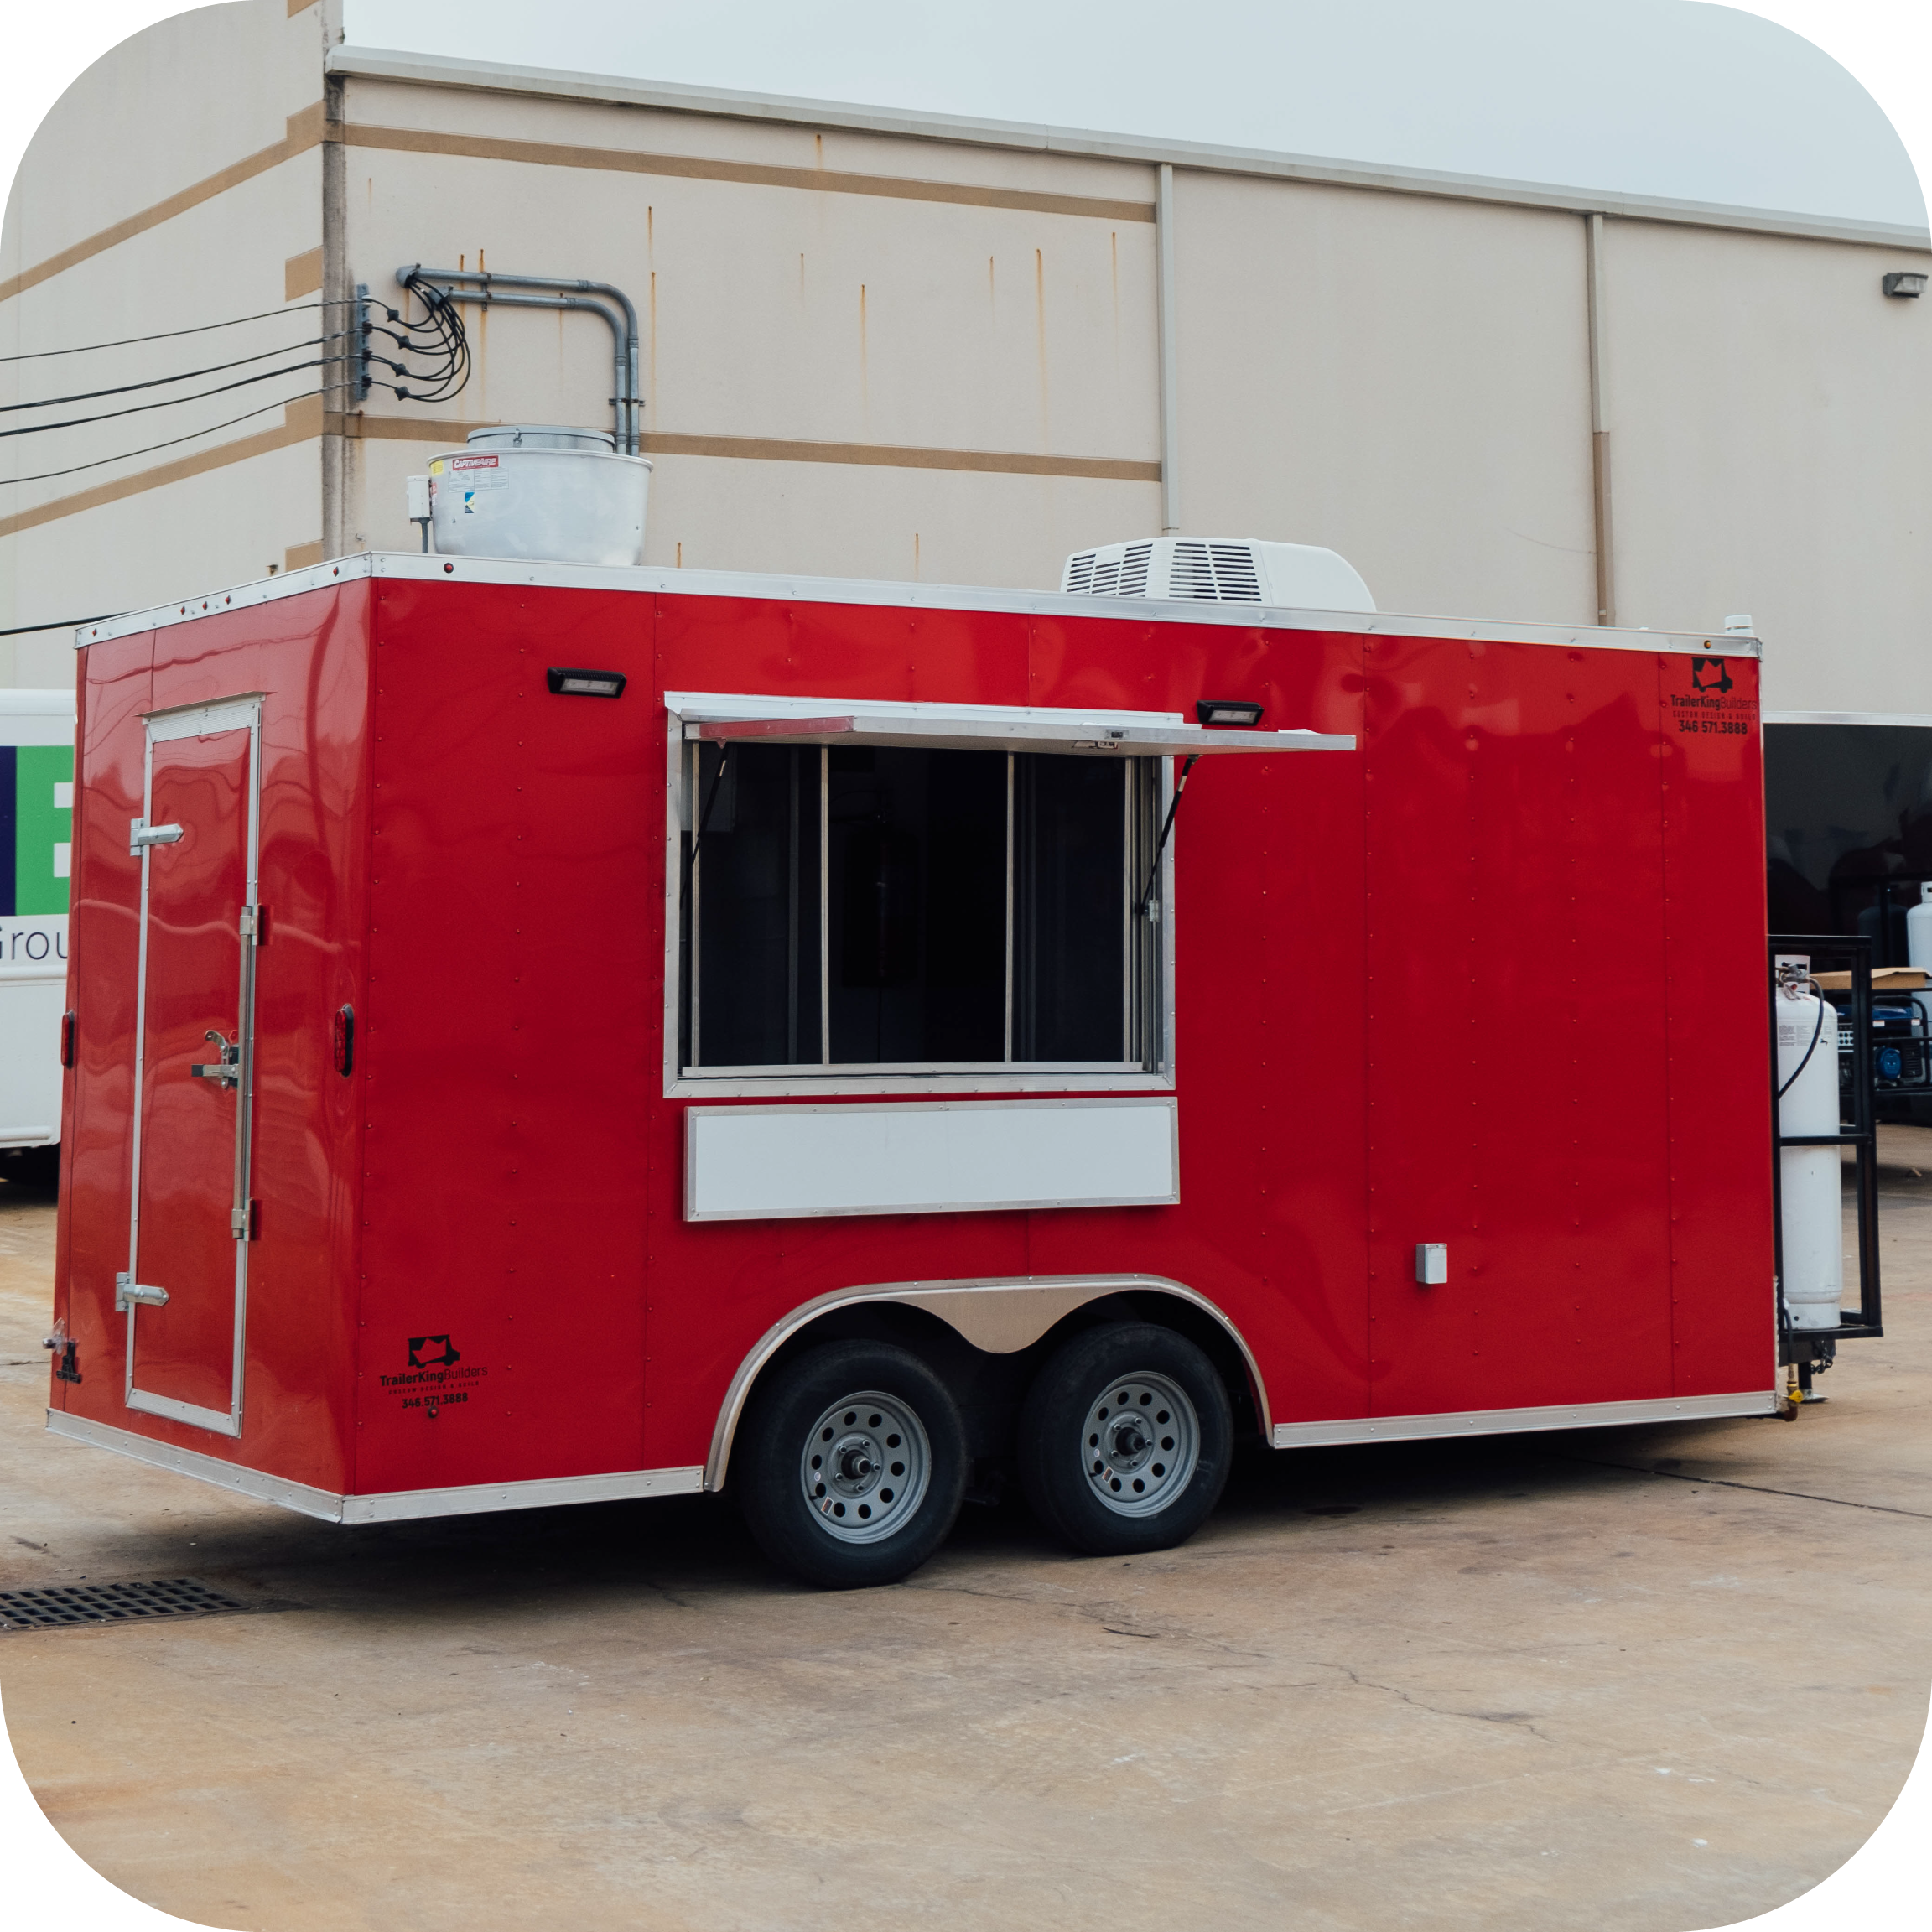 squared-image-with-soft-corners-of-red-food-trailer-made-by-trailer-king-builders